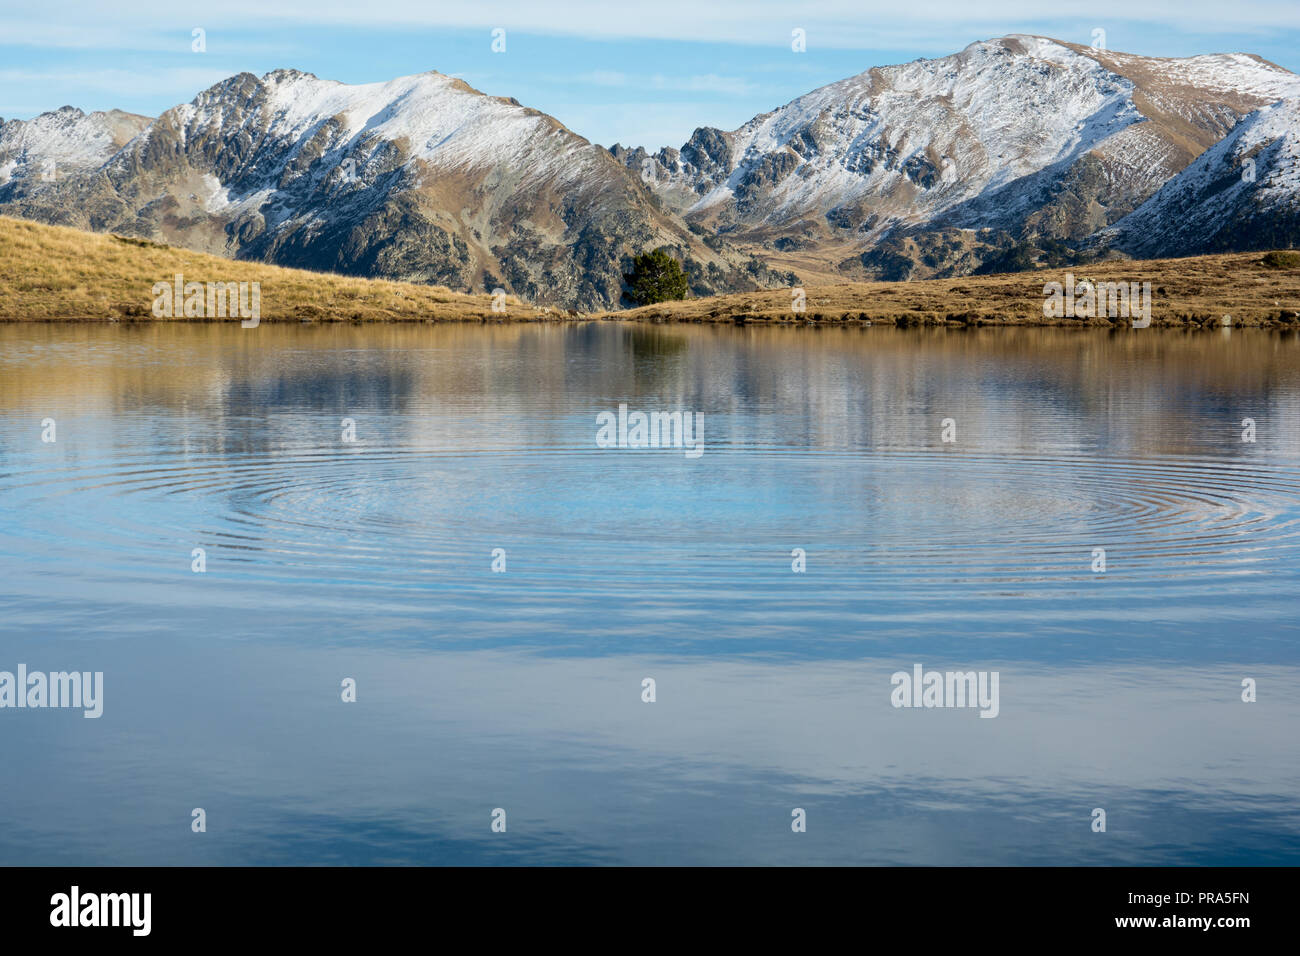 Autumn in Lake Querol, El Tarter, Canillo, Andorra. - Stock Image